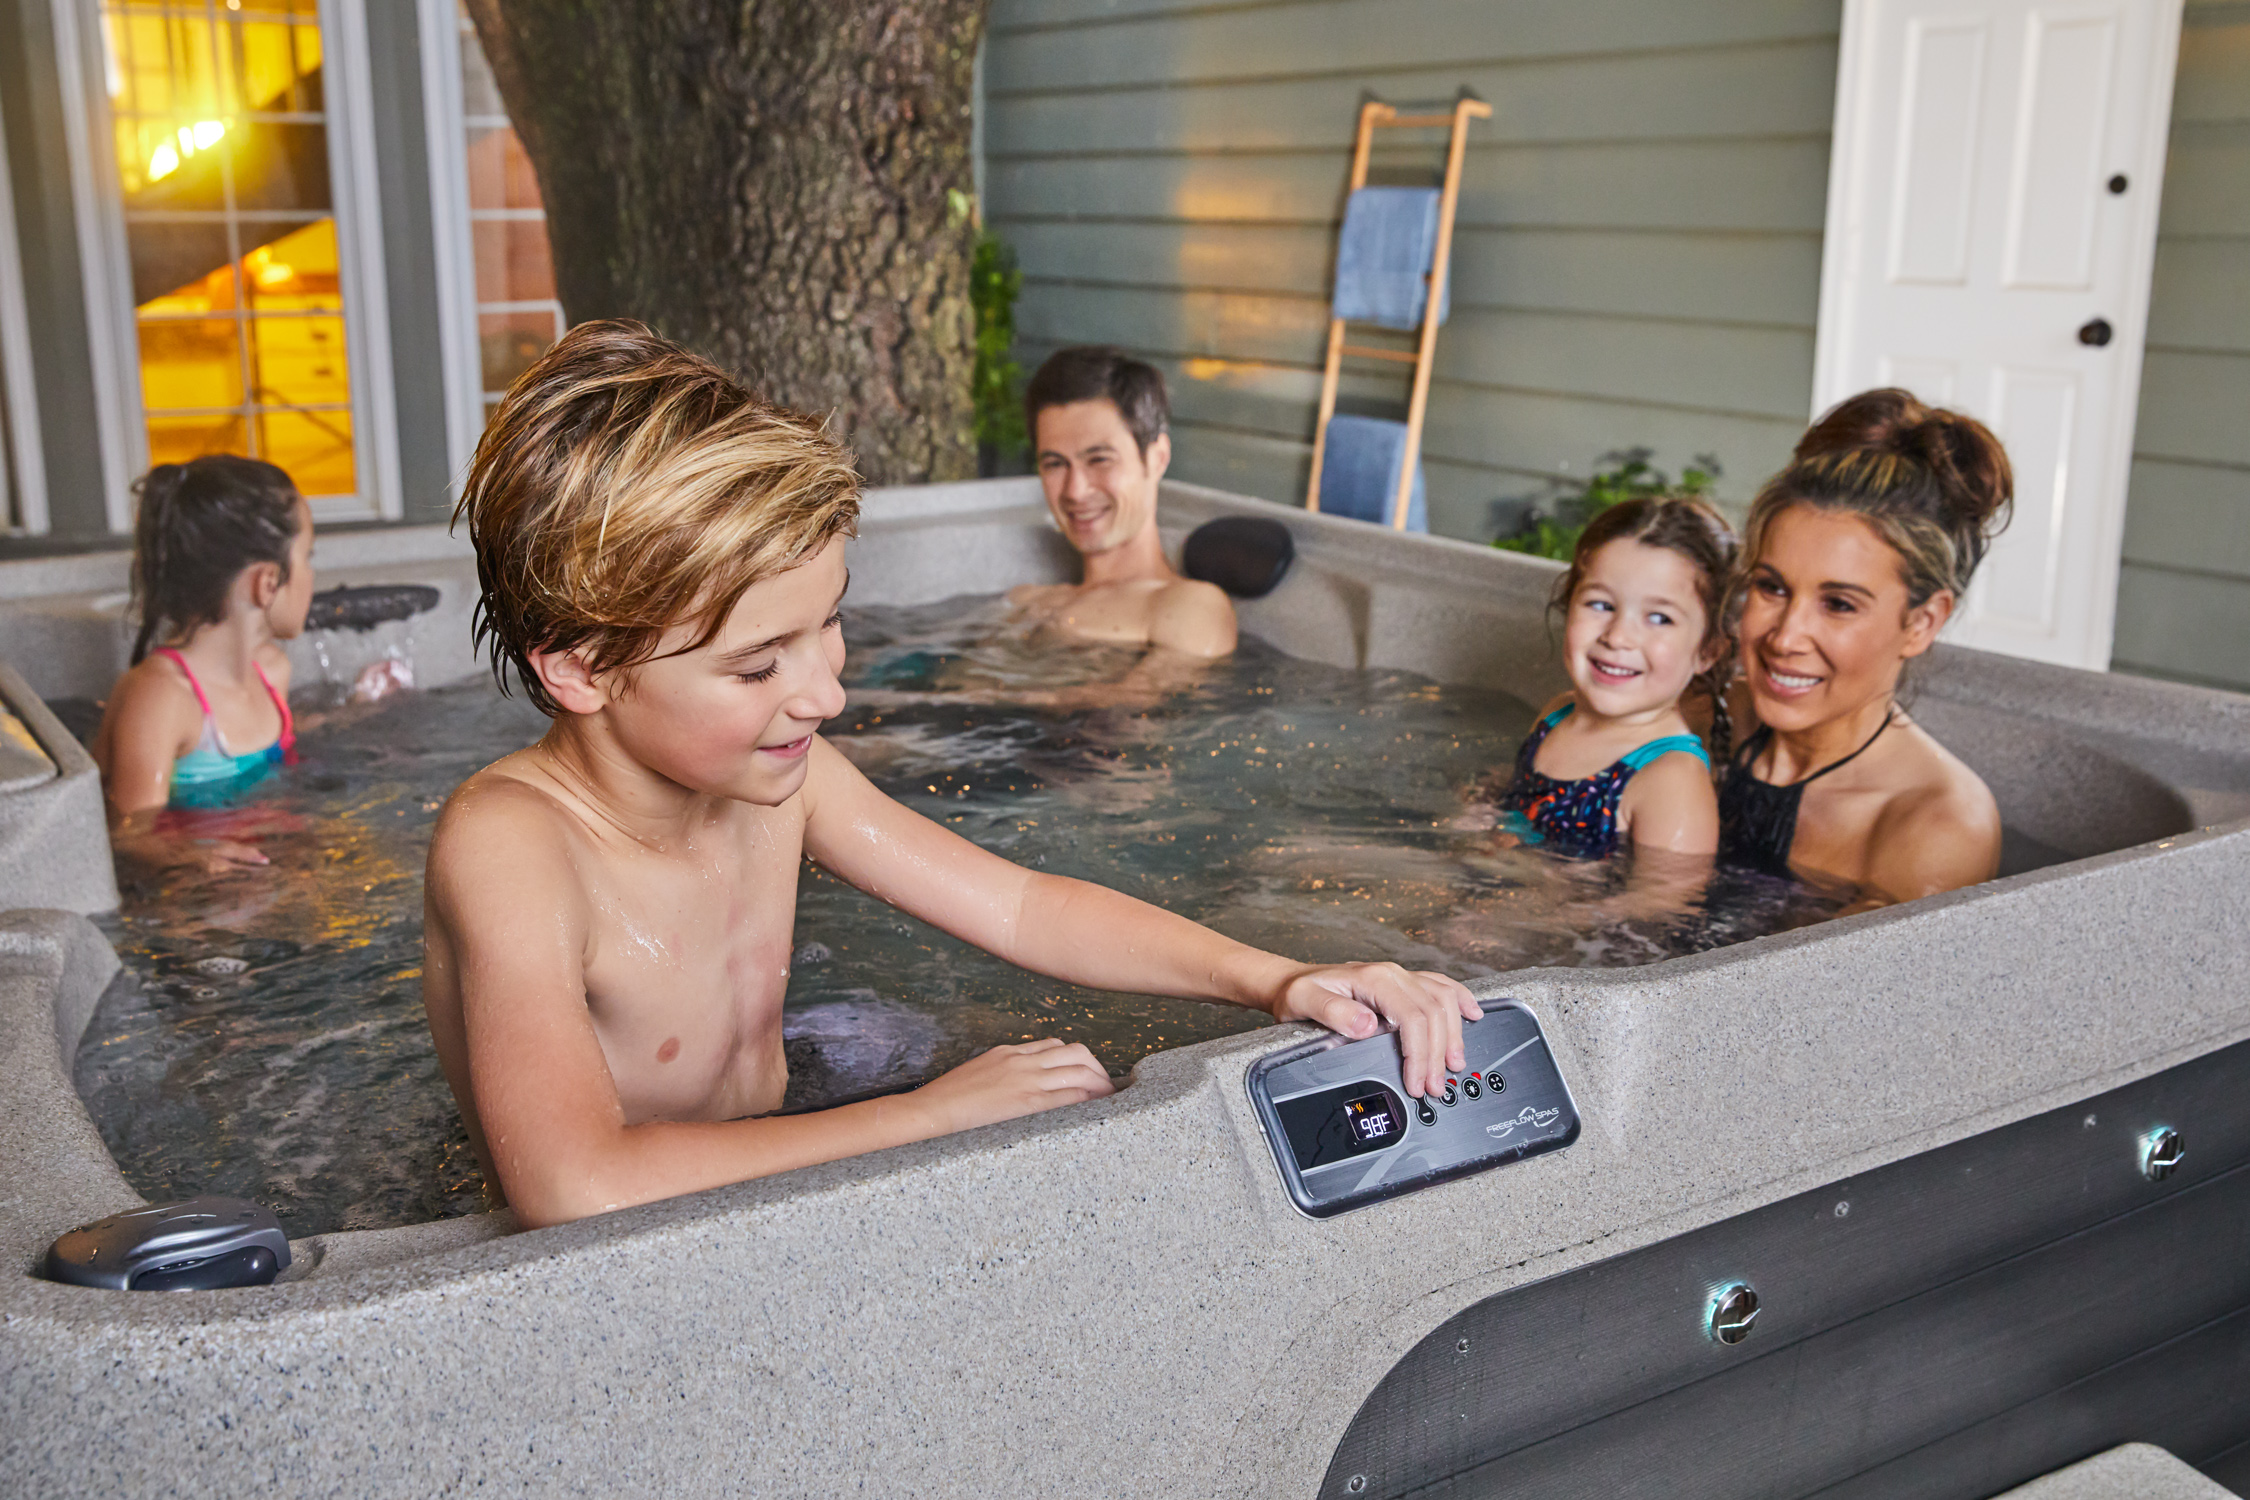 Freeflow Spas Offer Valuable Together Time with Room for the Whole Family